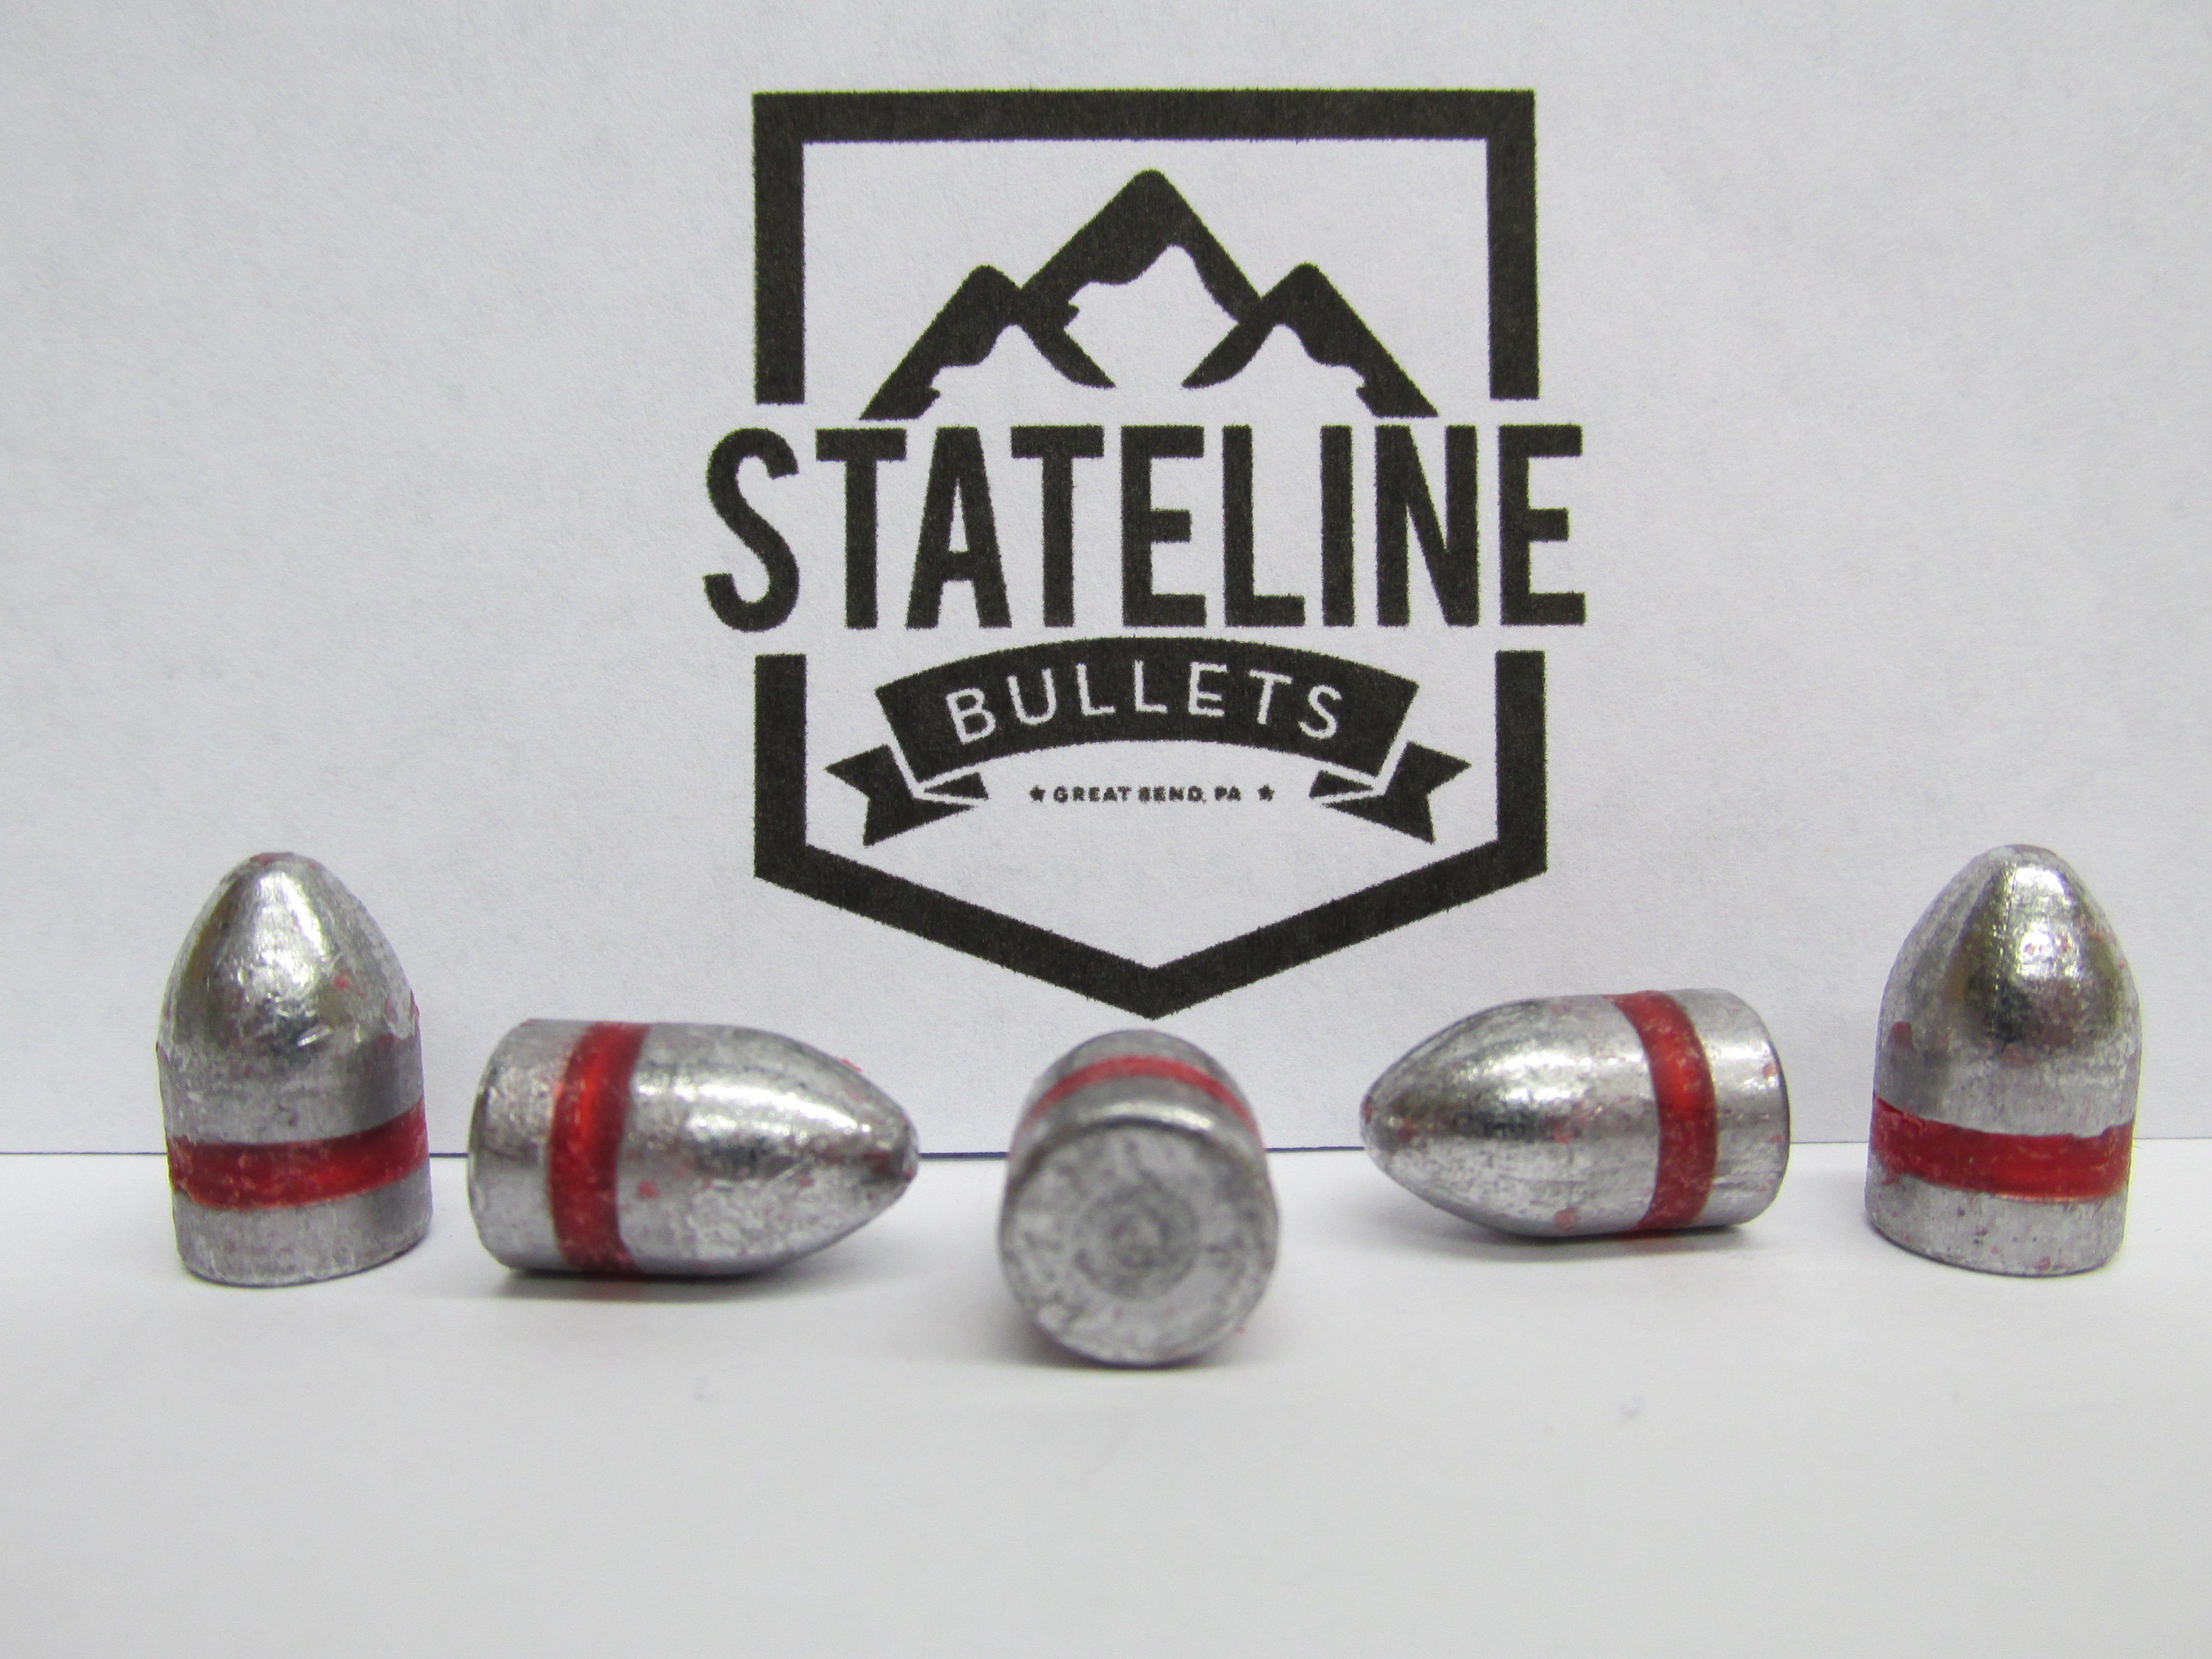 9mm 125 grain RN Cast Bullets